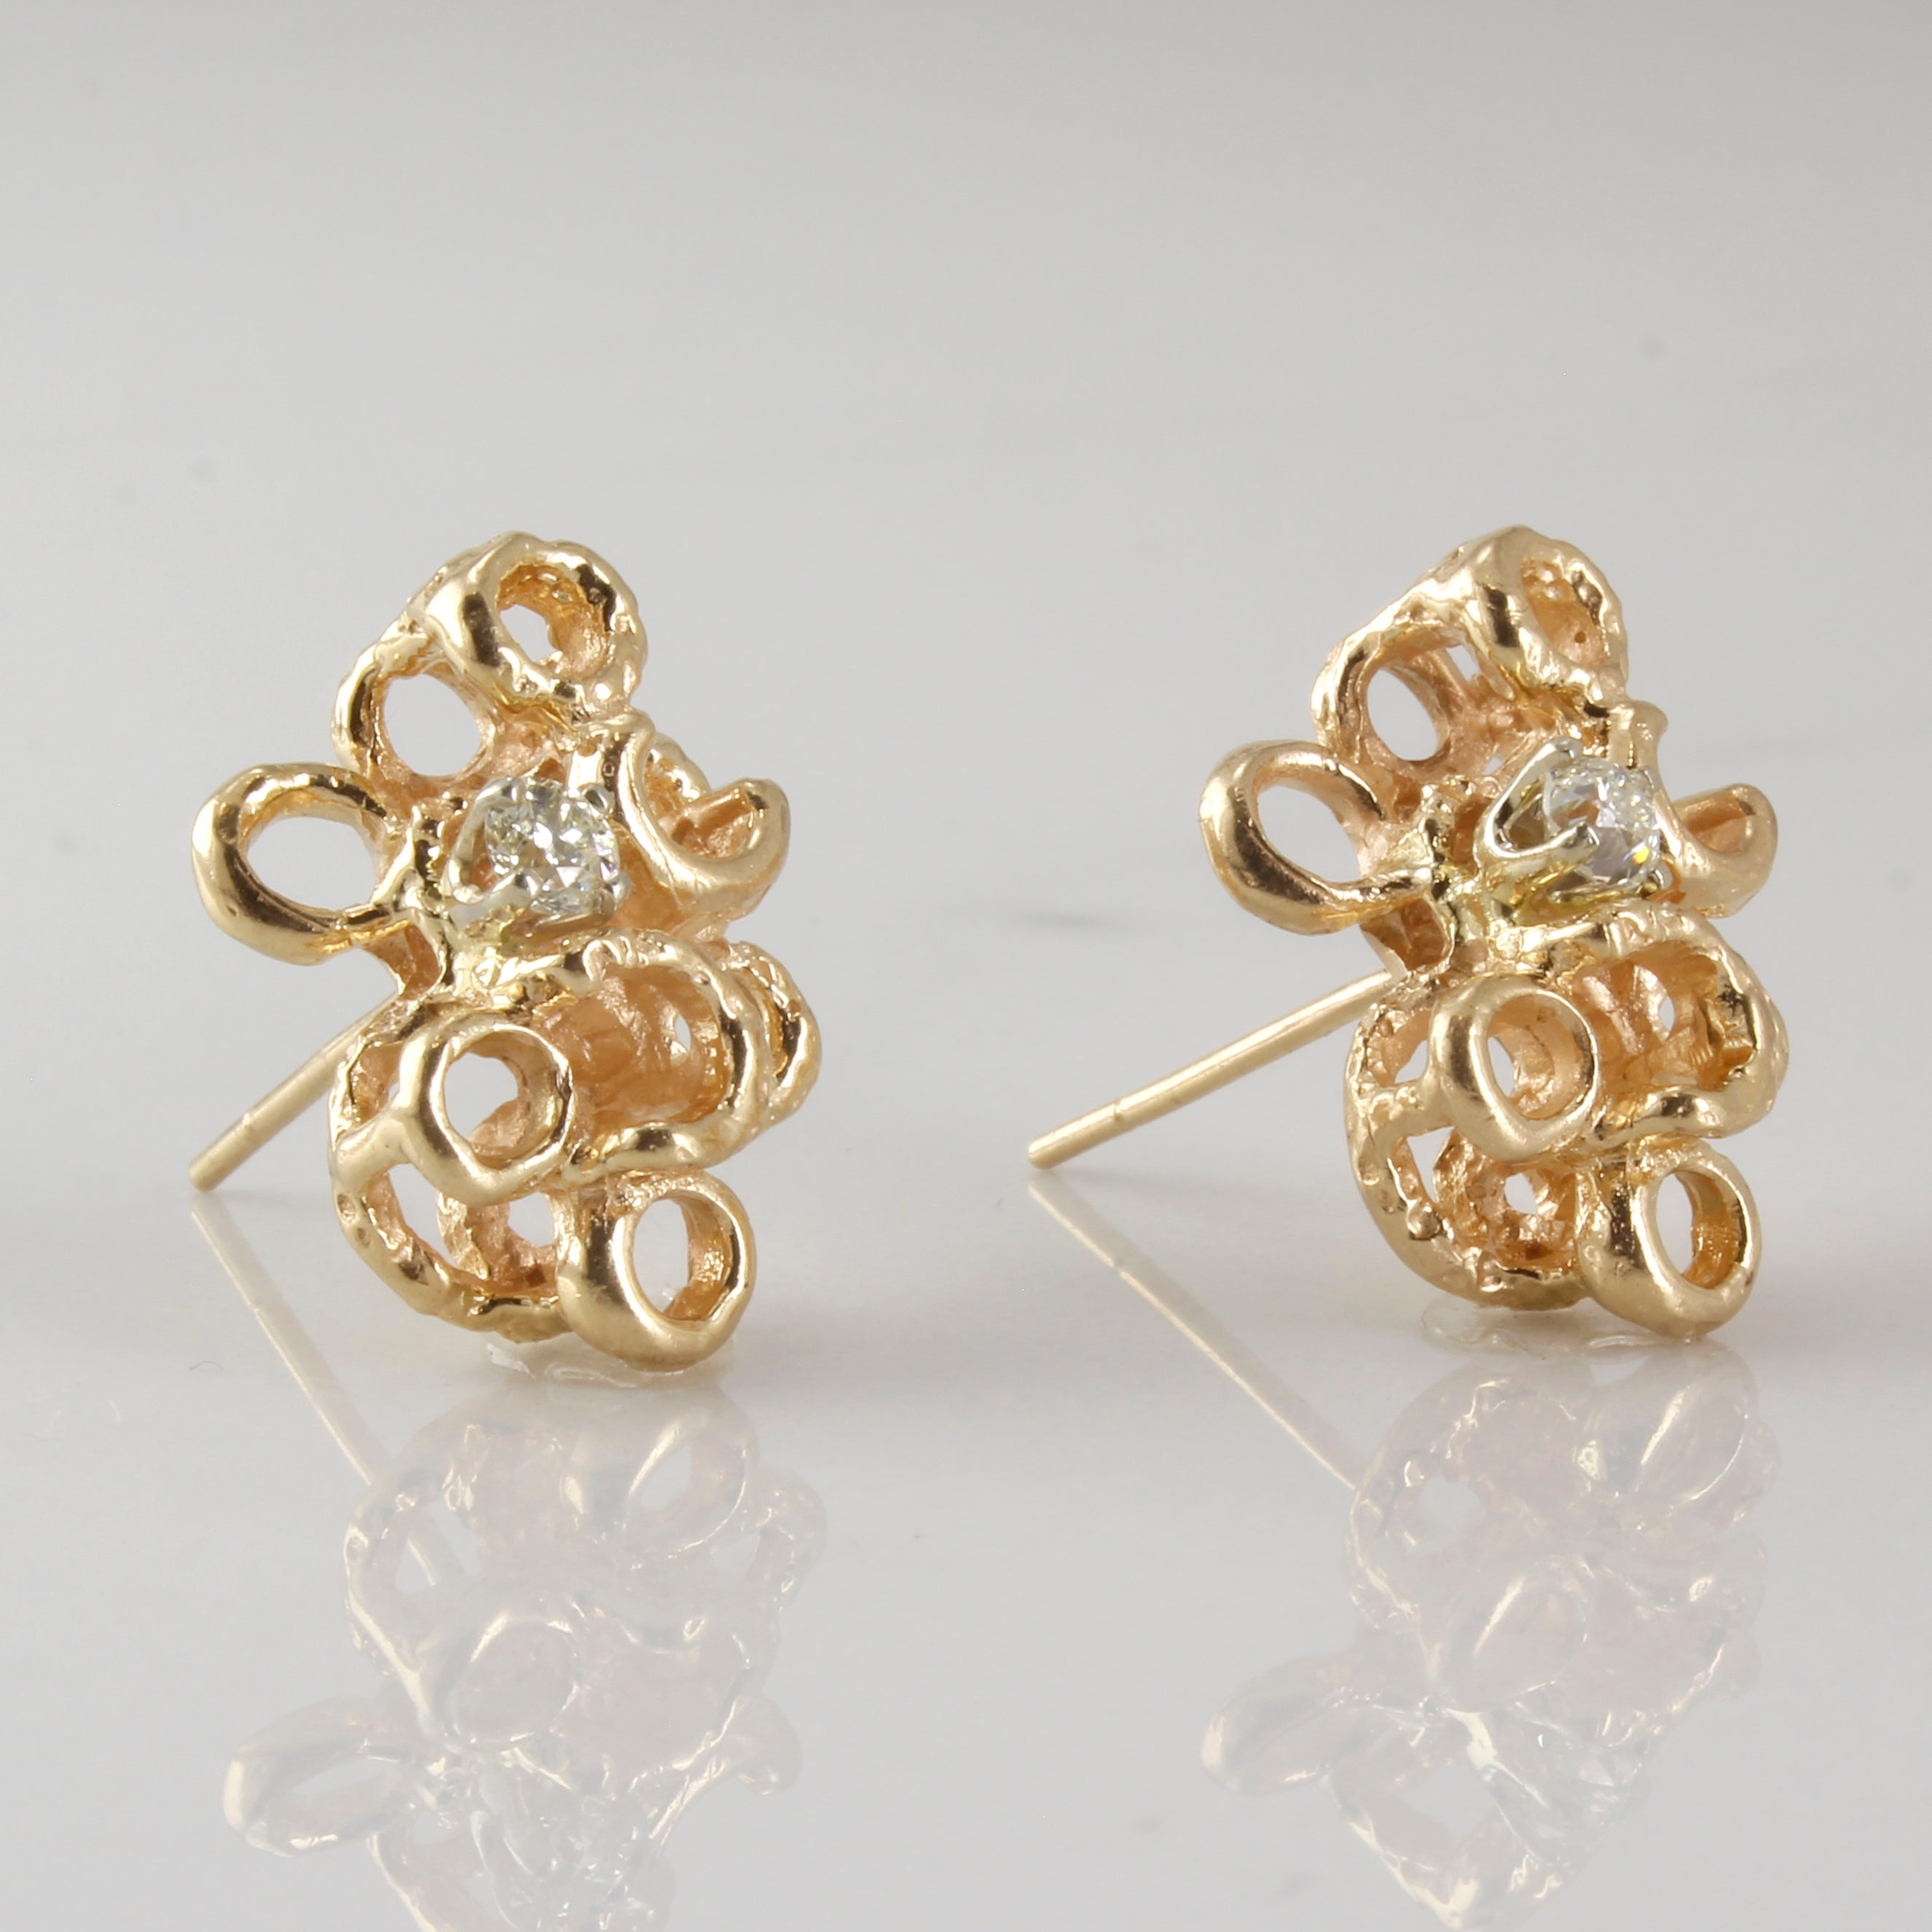 Custom Old Mine Cut Diamond Earrings | 0.24ctw |